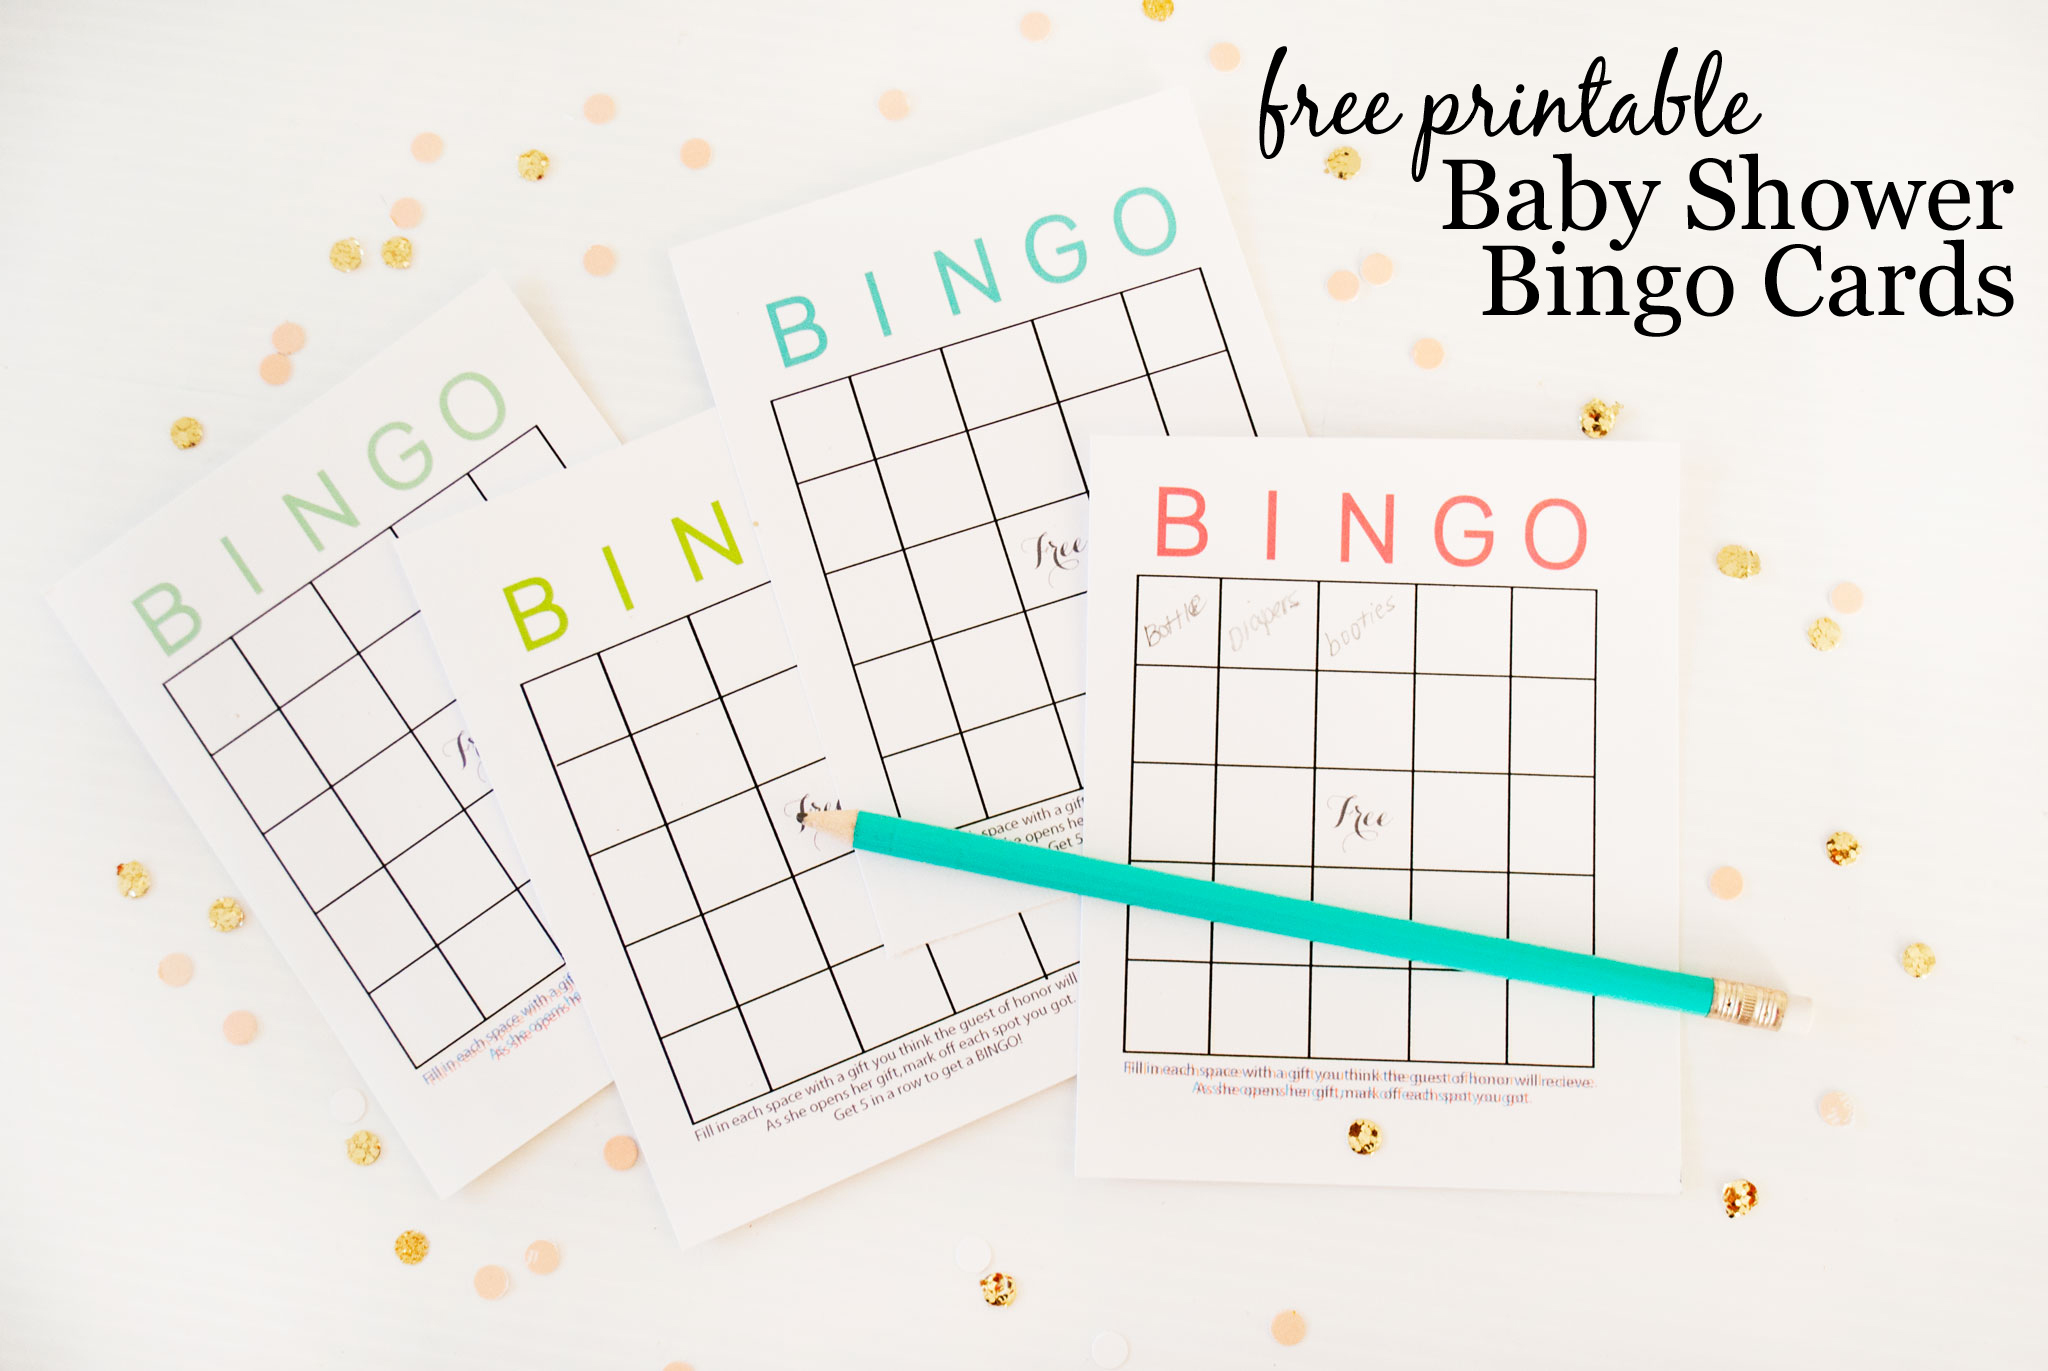 photograph regarding Printable Baby Shower Bingo titled Absolutely free Printable Kid Shower Bingo Playing cards - Job Nursery